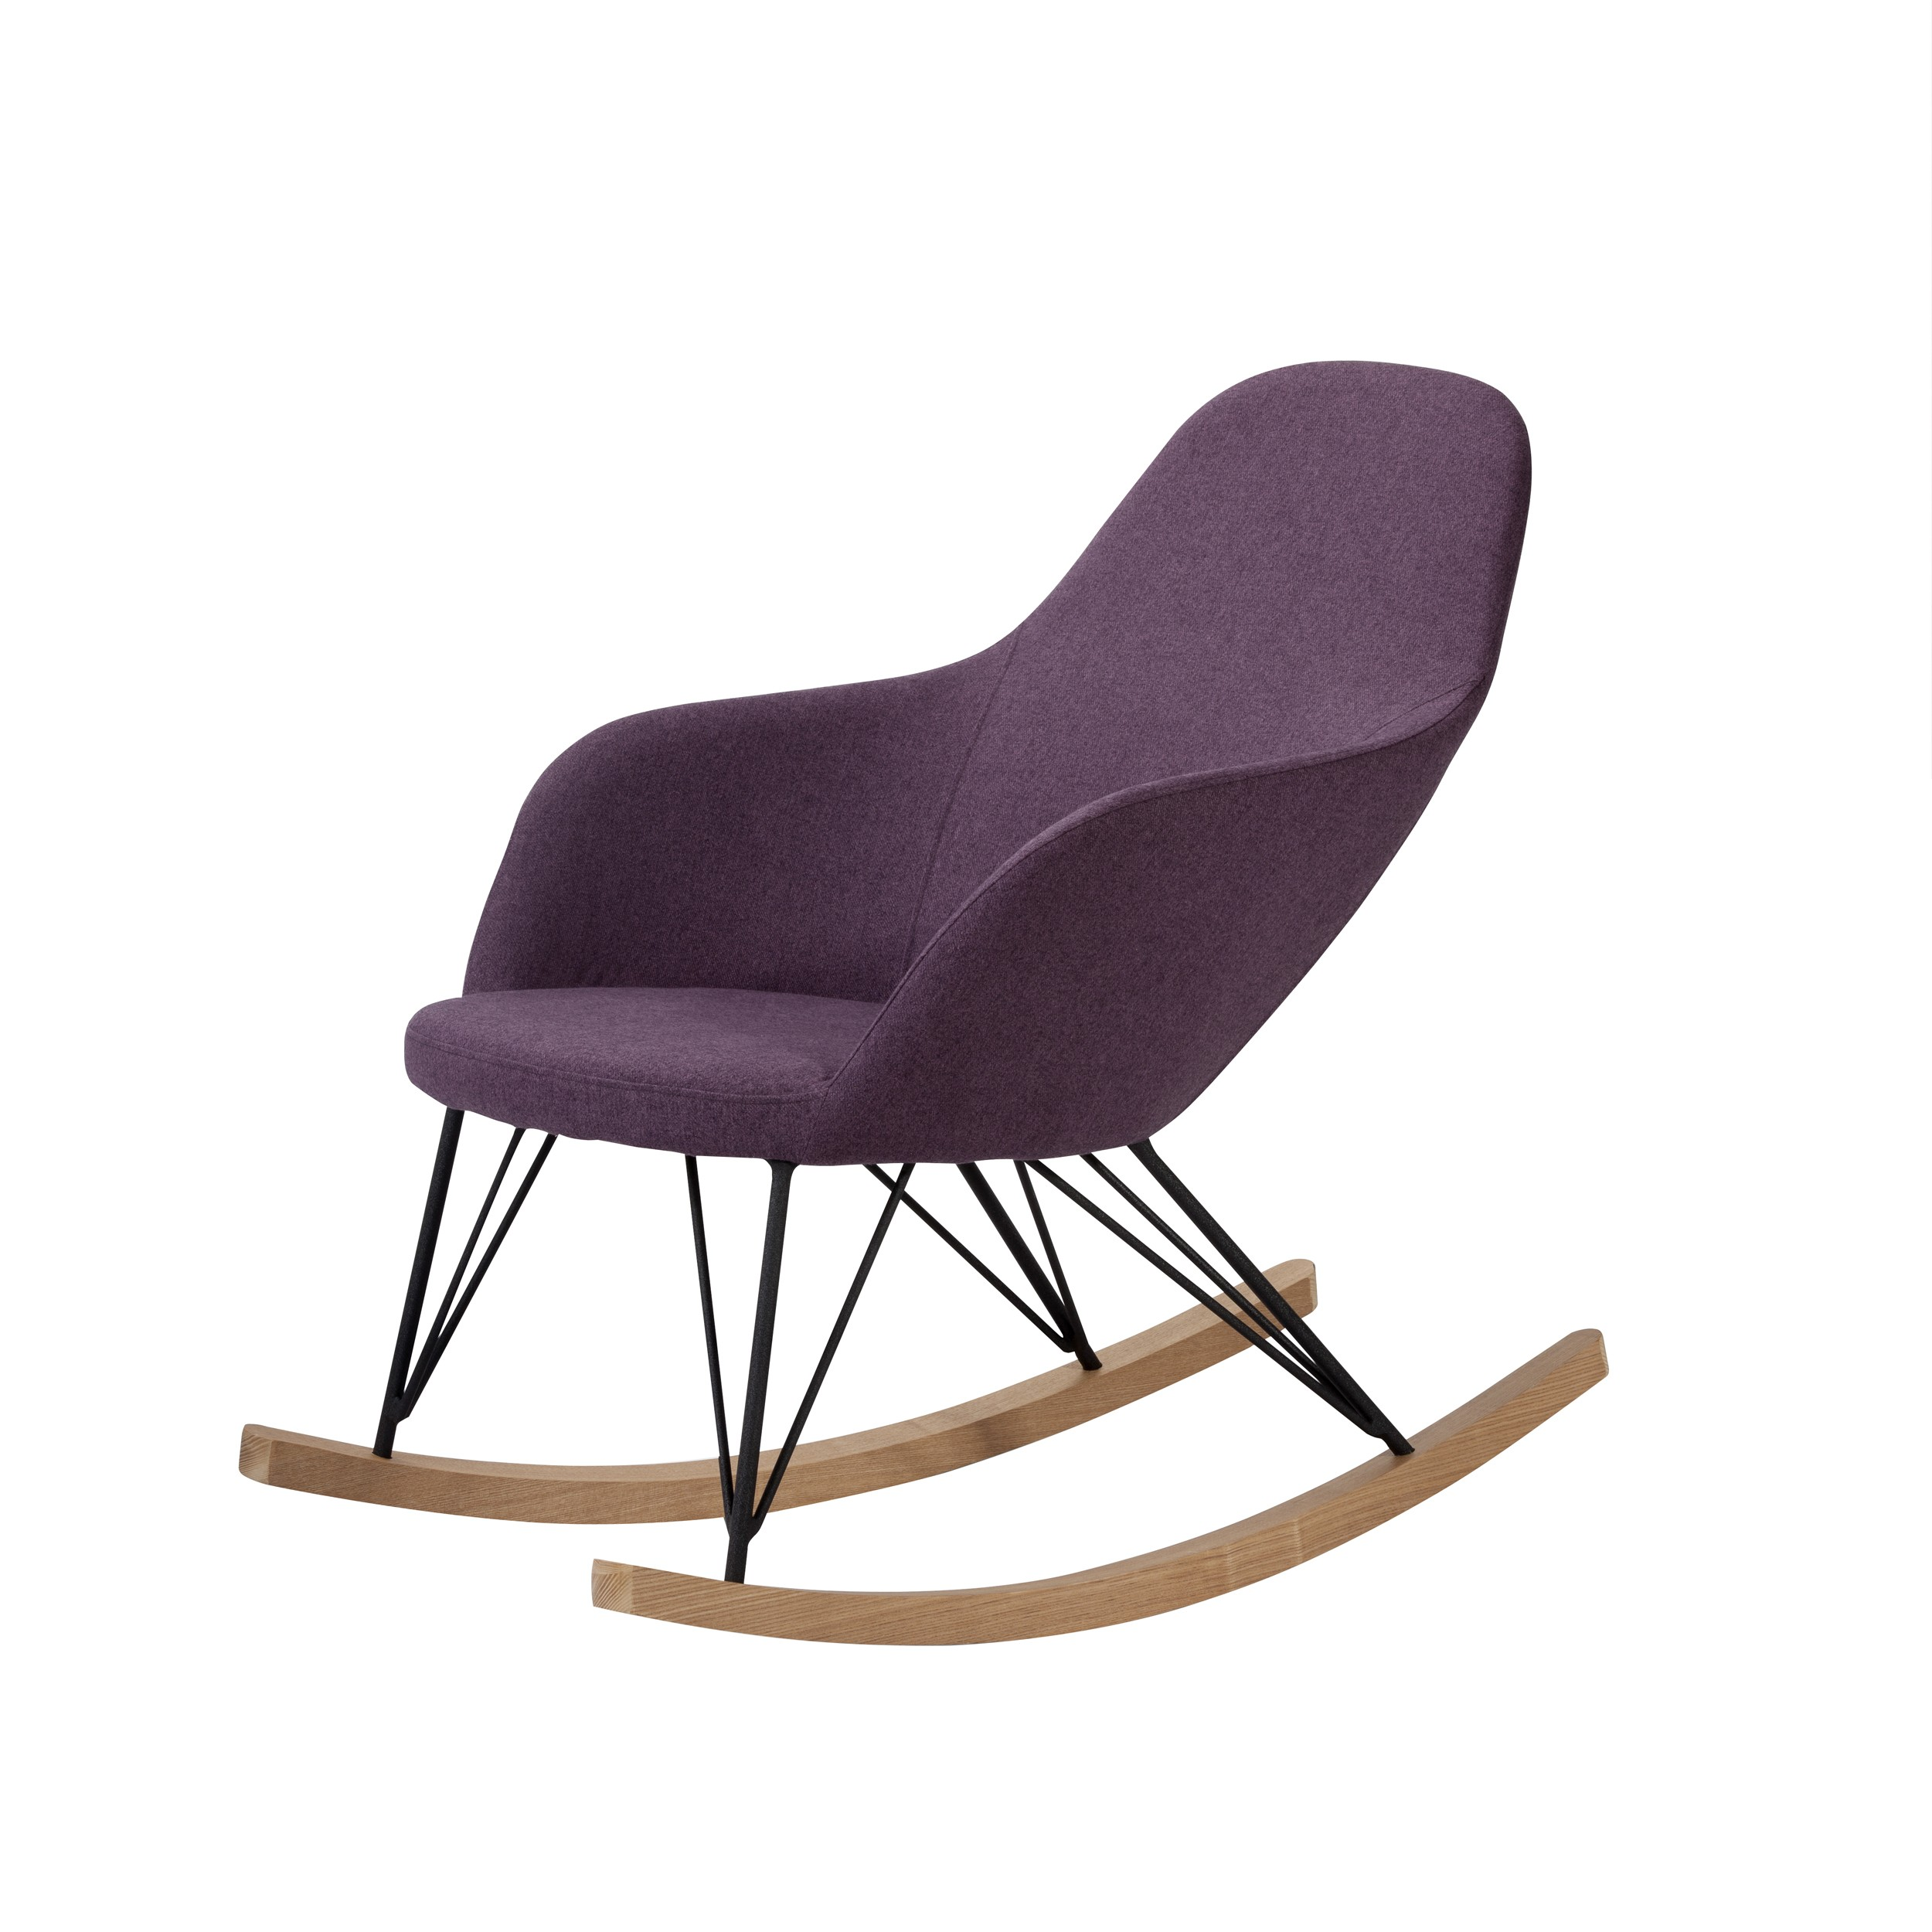 rocking chair malibu violet achetez nos rocking chair malibu violet rdv d co. Black Bedroom Furniture Sets. Home Design Ideas